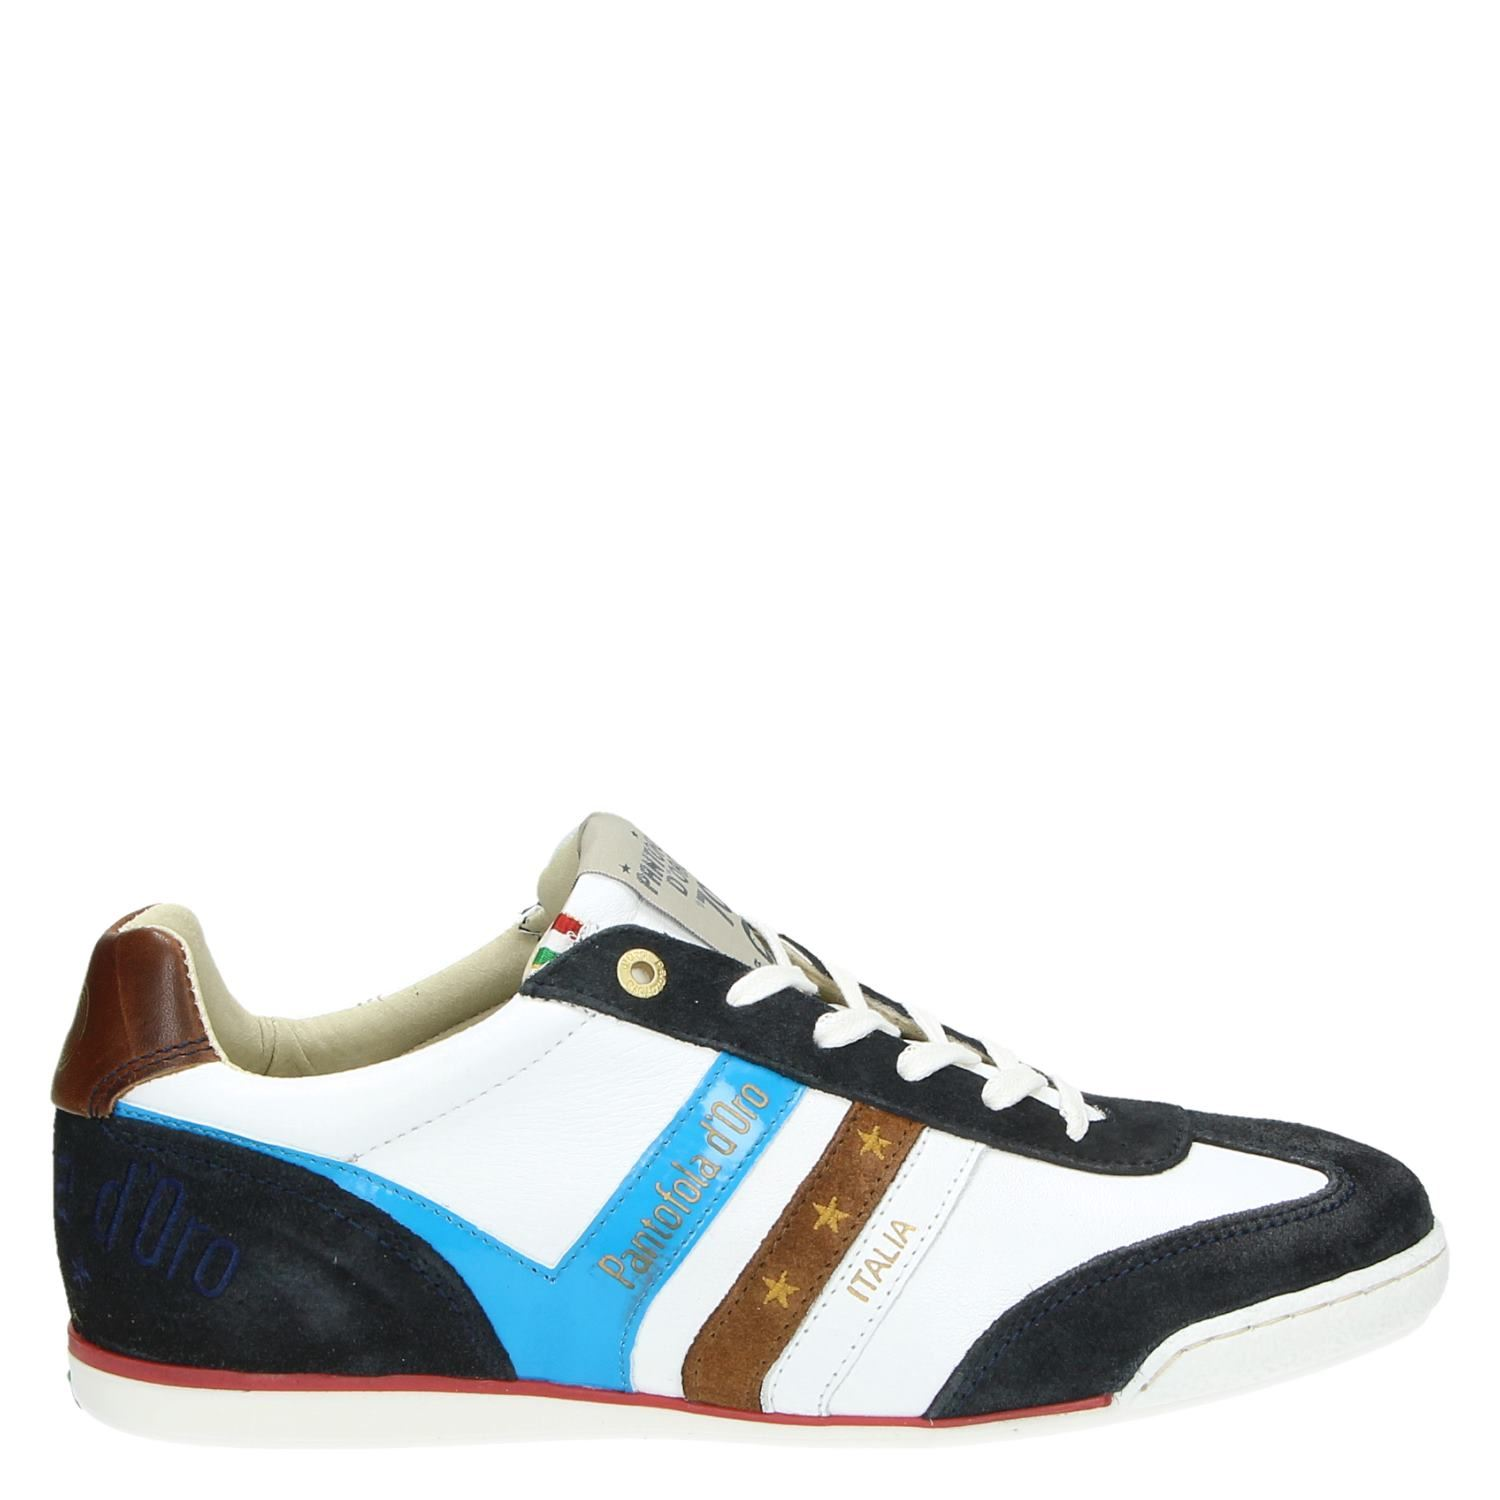 Pantofola Loreto Heren Sneakers D'oro Lage Wit fy76Ygbv